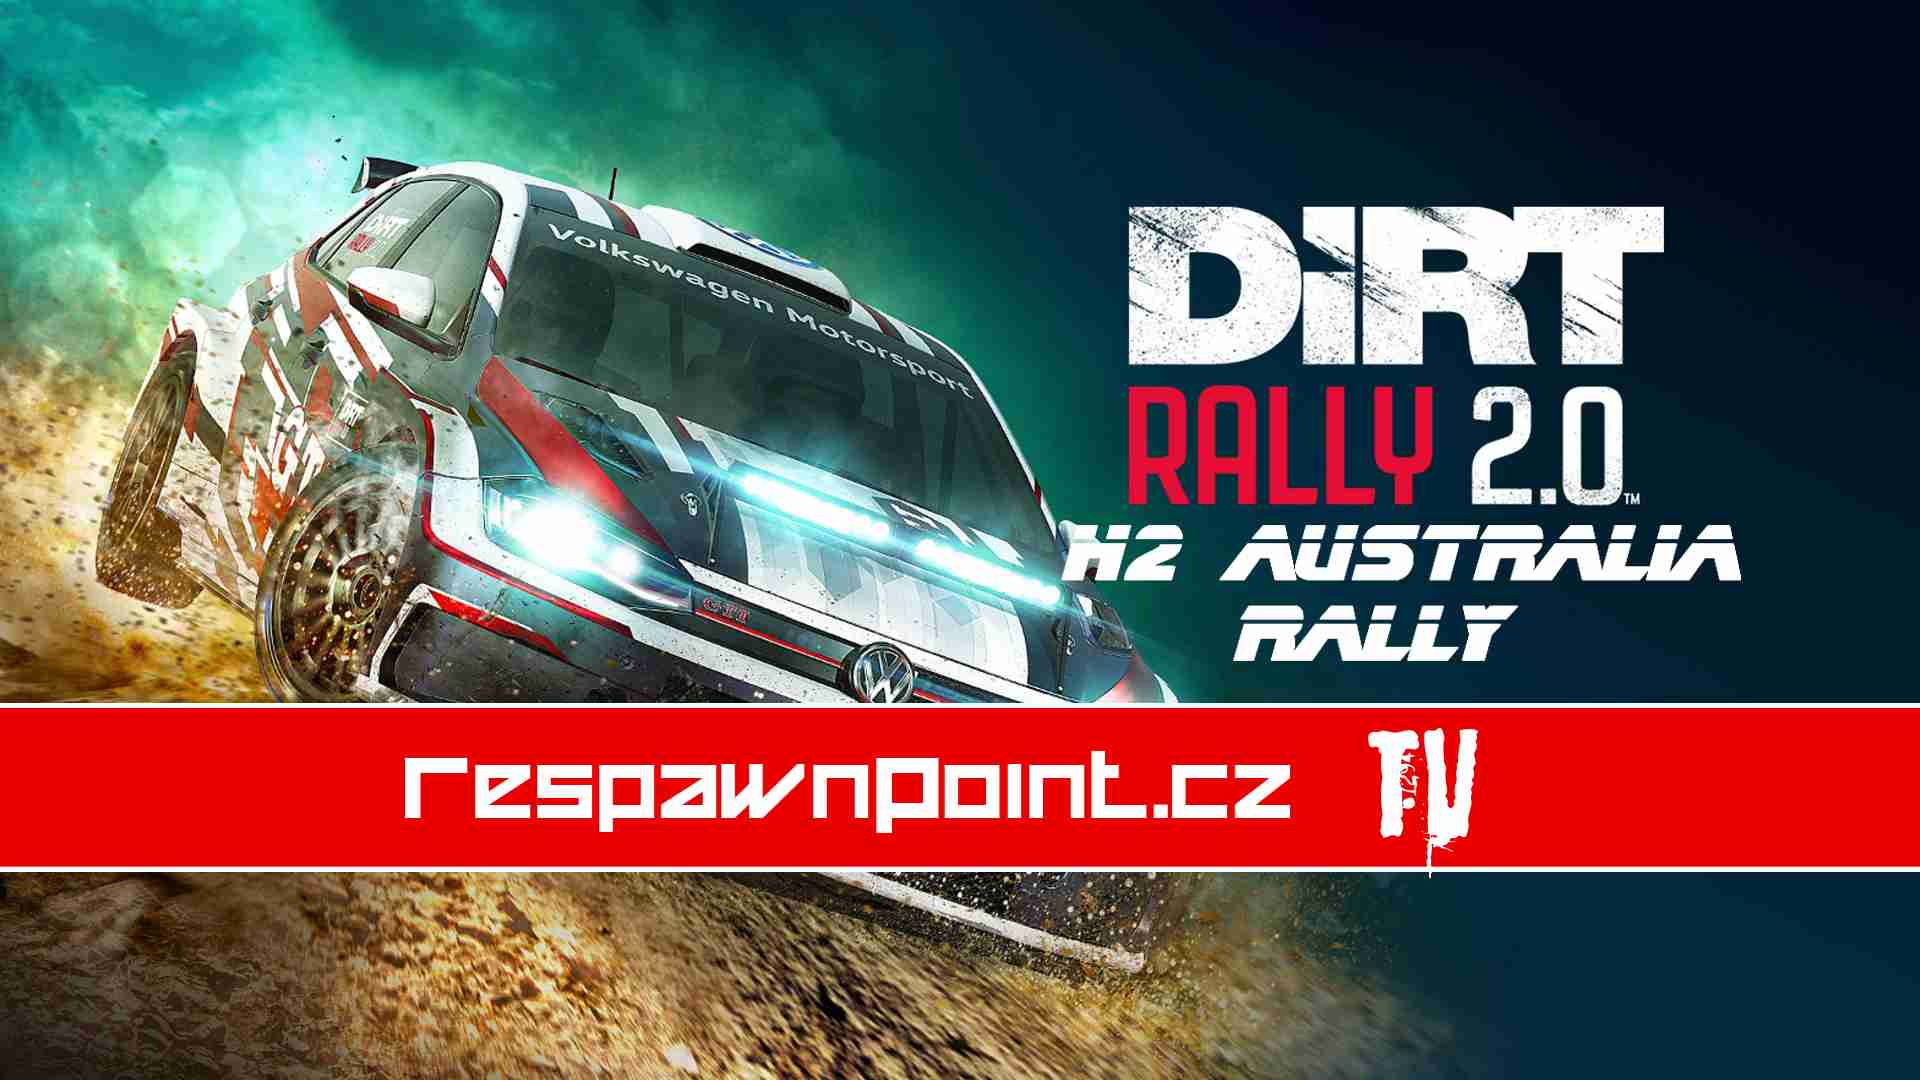 DiRT Rally 2.0 – H2 Rally Australia Gameplay and Replay